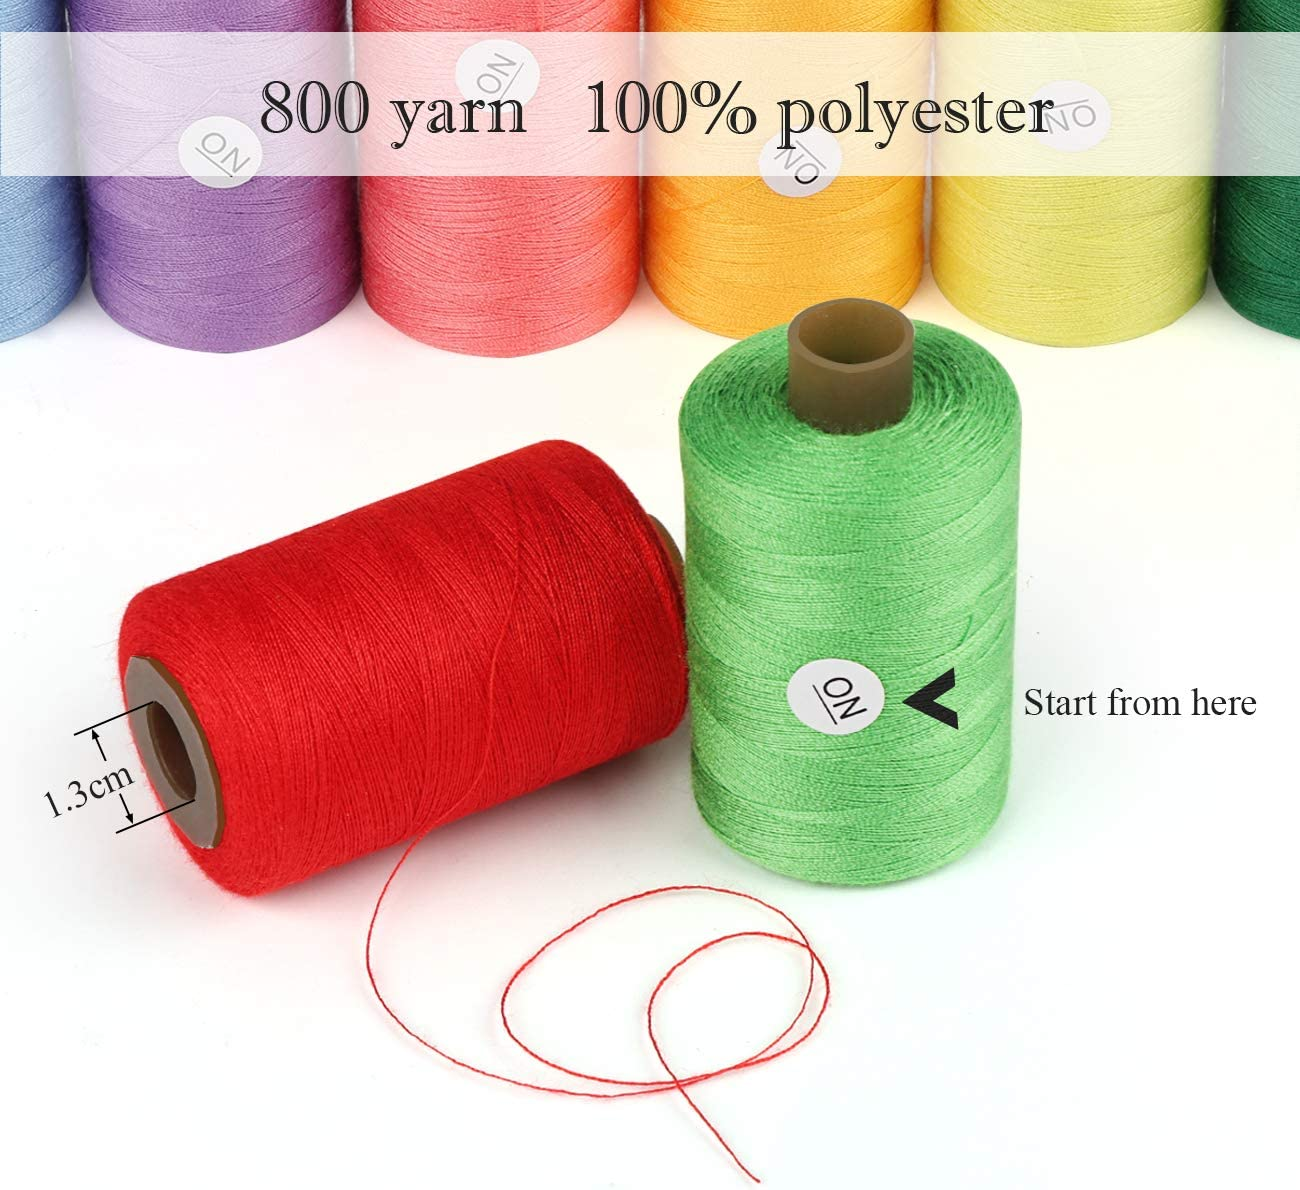 ghdonat.com 800yd Each of Serger Sewing Machine Thread Perfect for ...